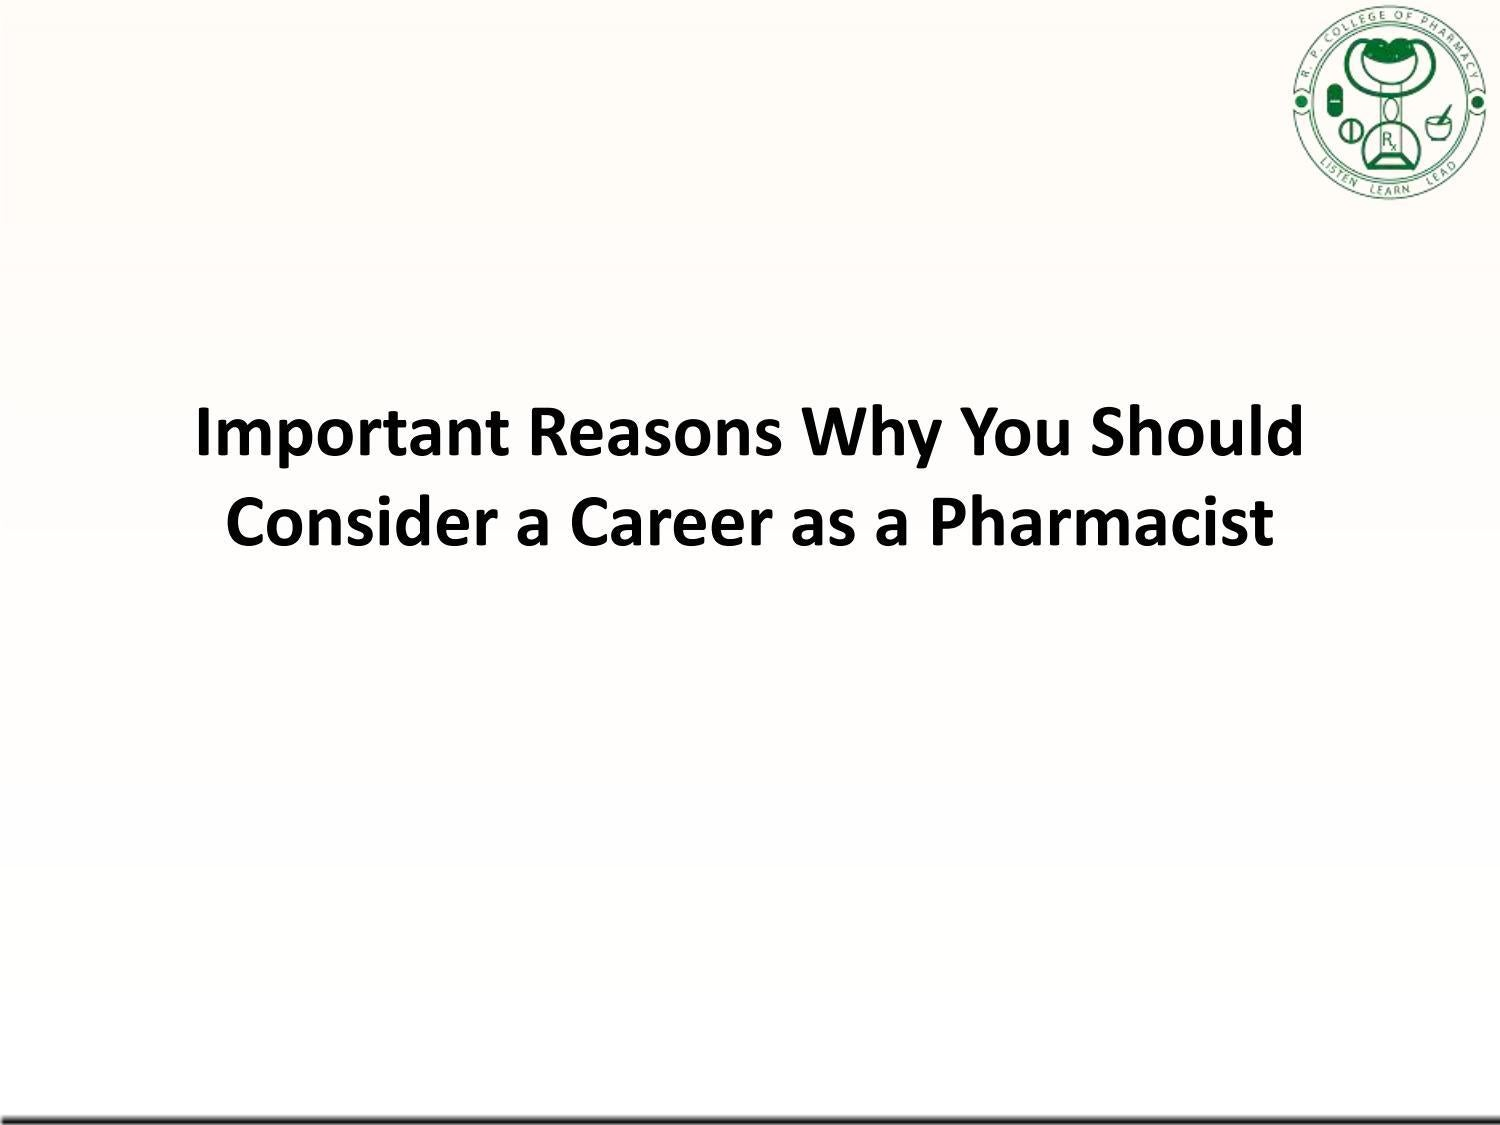 Important Reasons Why You Should Consider a Career as a Pharmacist